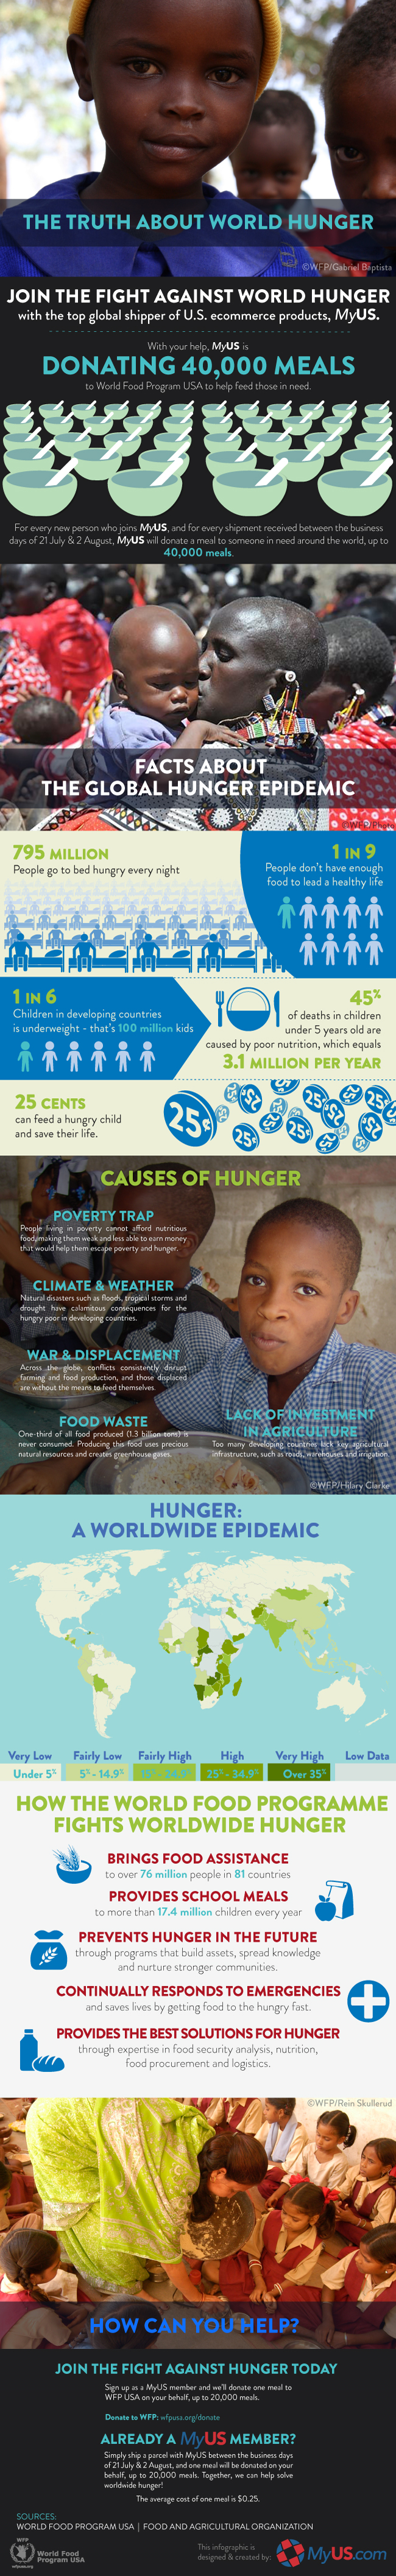 The Truth About World Hunger Infographic